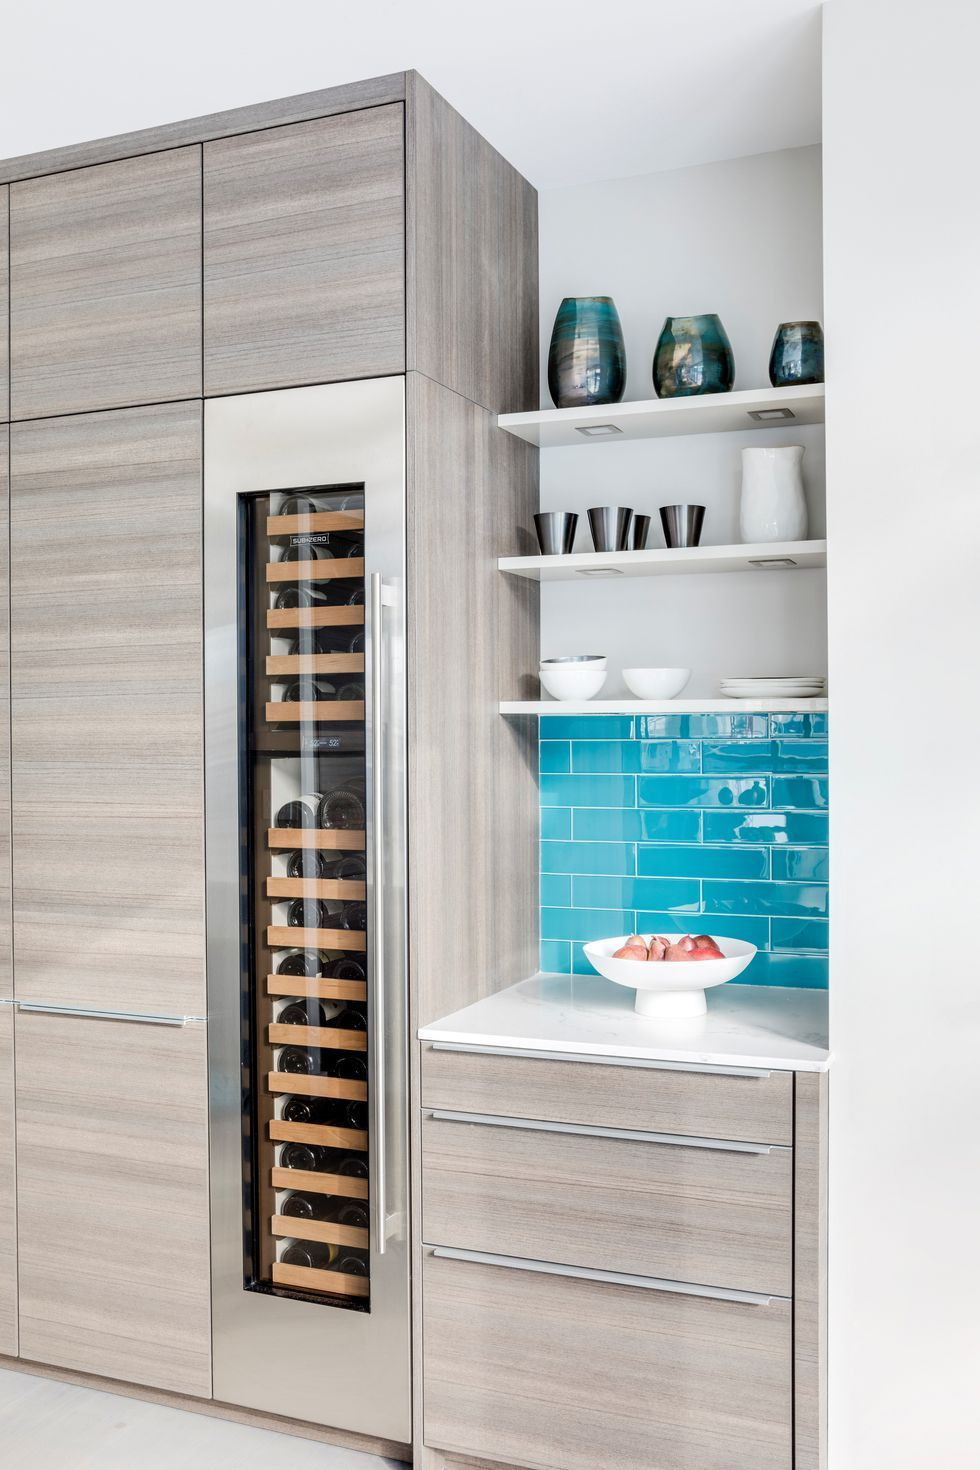 Contemporary look A New Way To Enjoy The Wood Kitchens That Is Definitely Charming